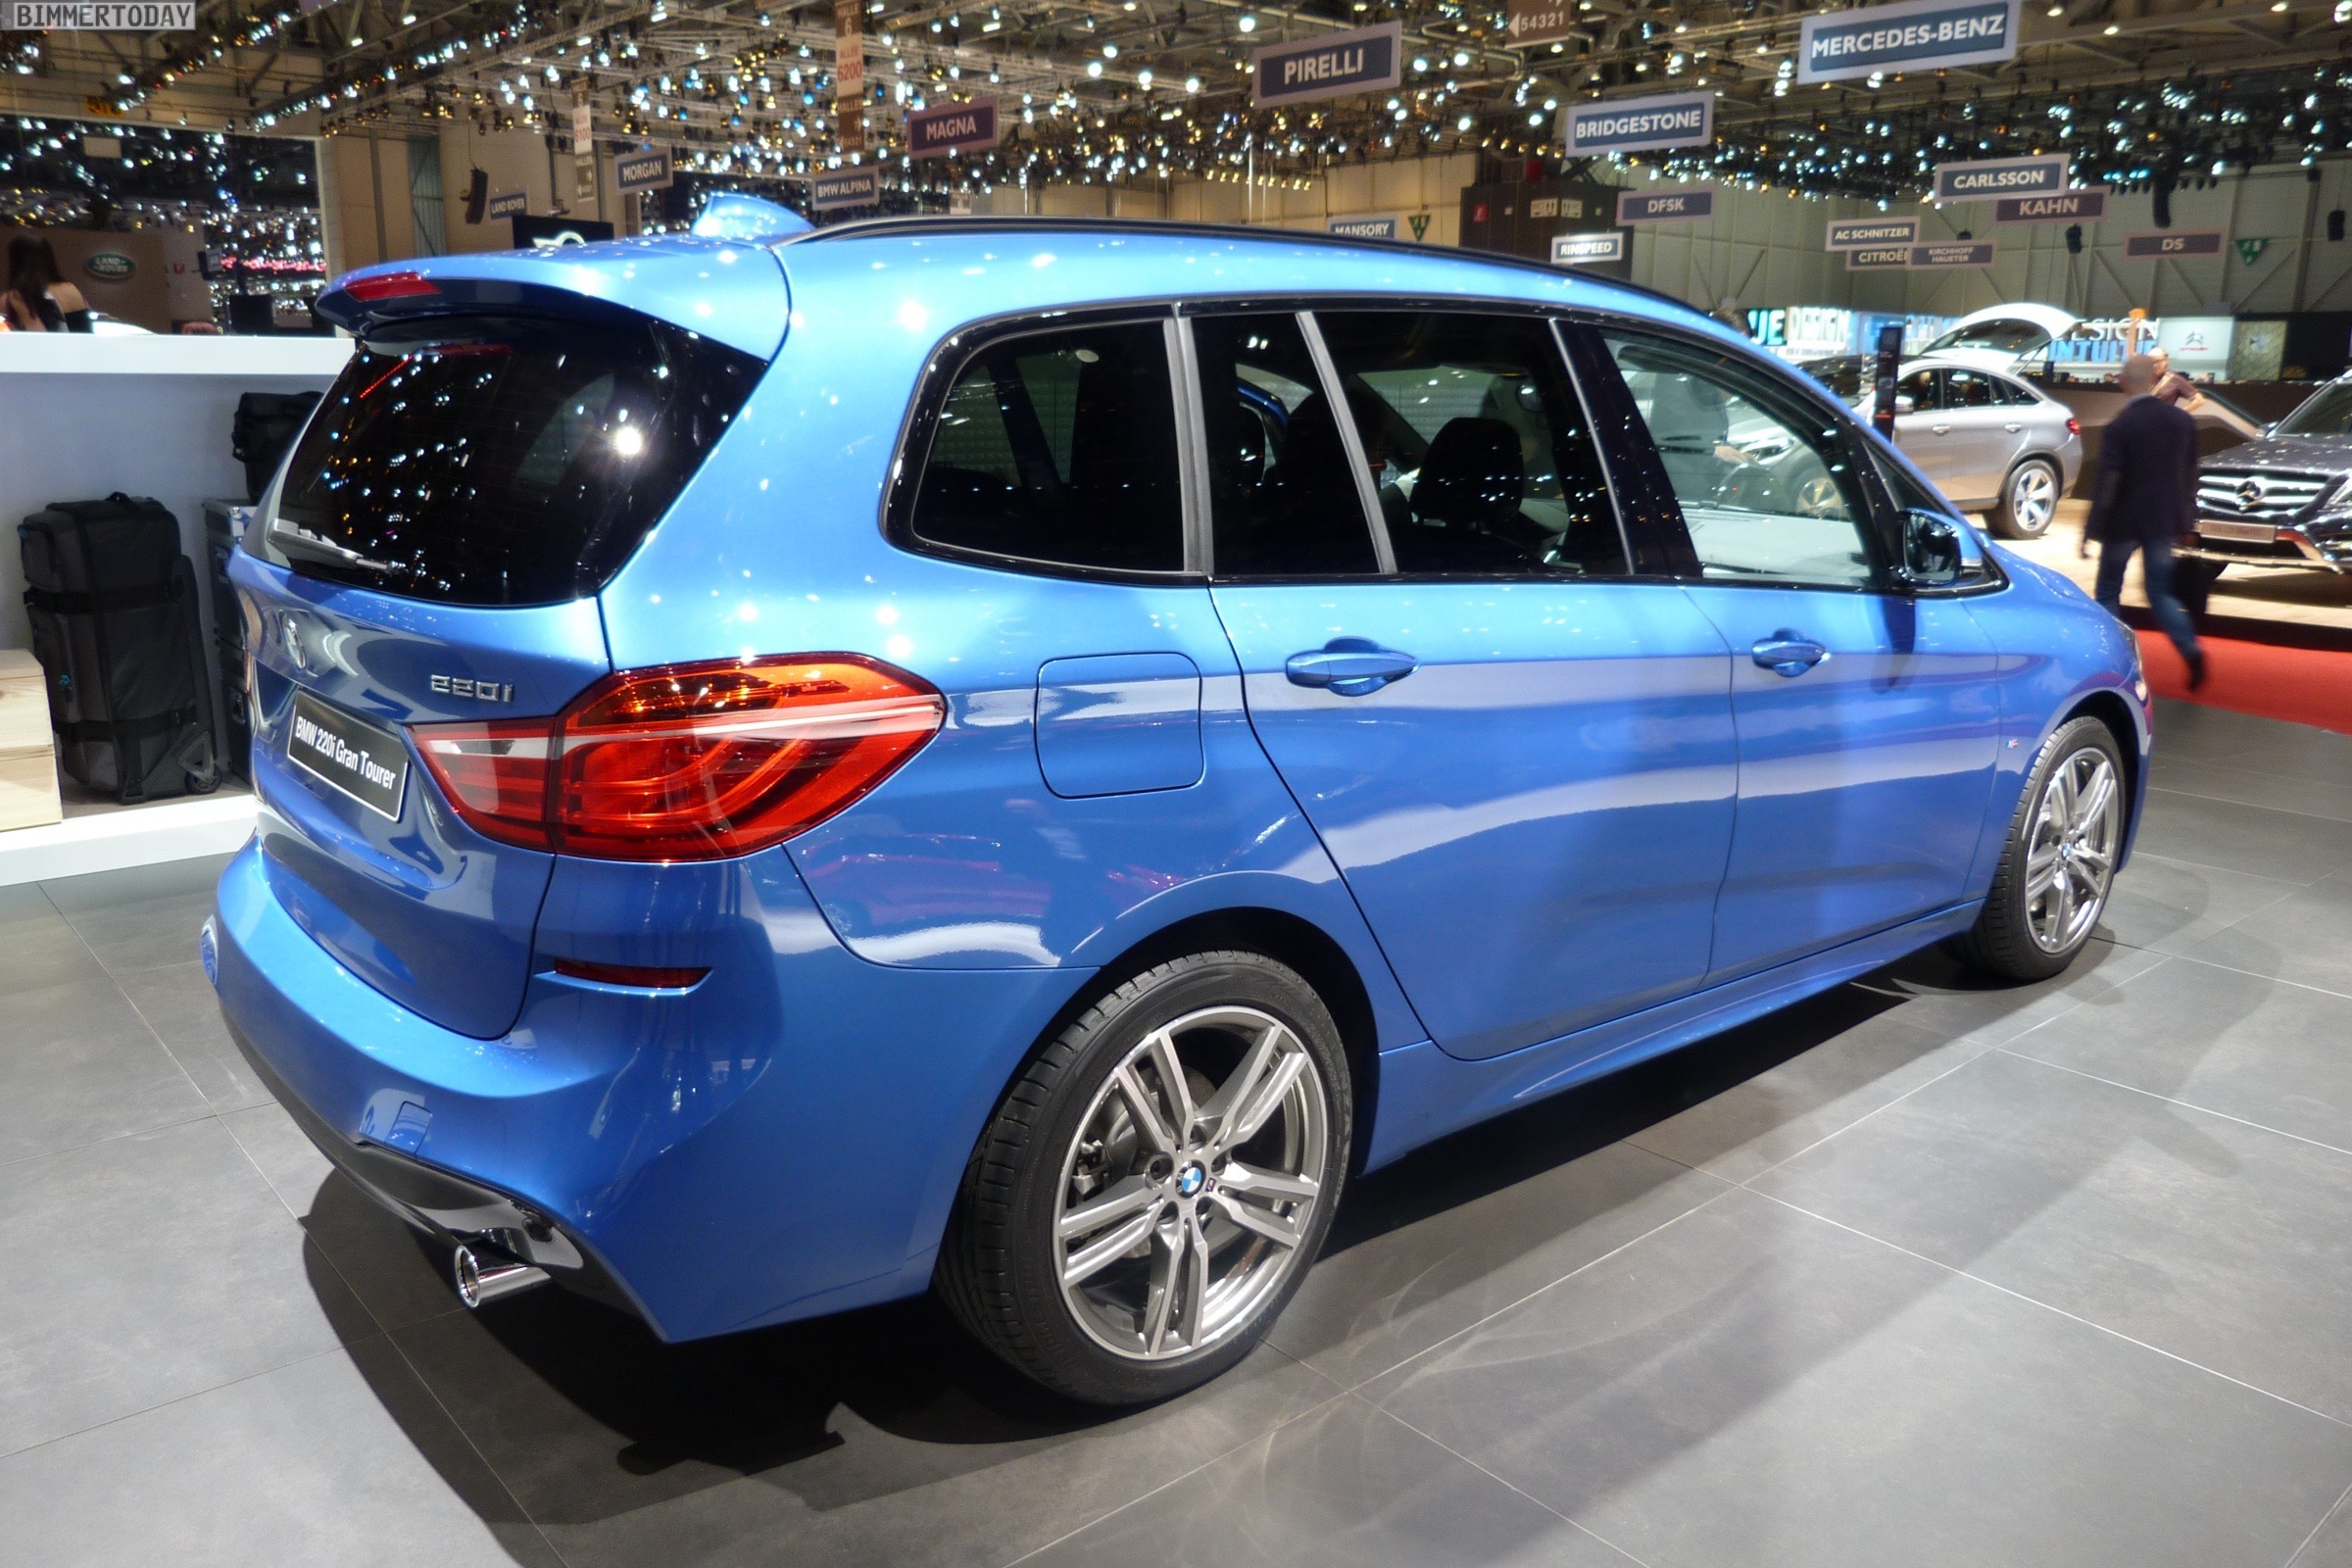 2015 geneva motor show bmw 2 series gran tourer m sport package. Black Bedroom Furniture Sets. Home Design Ideas